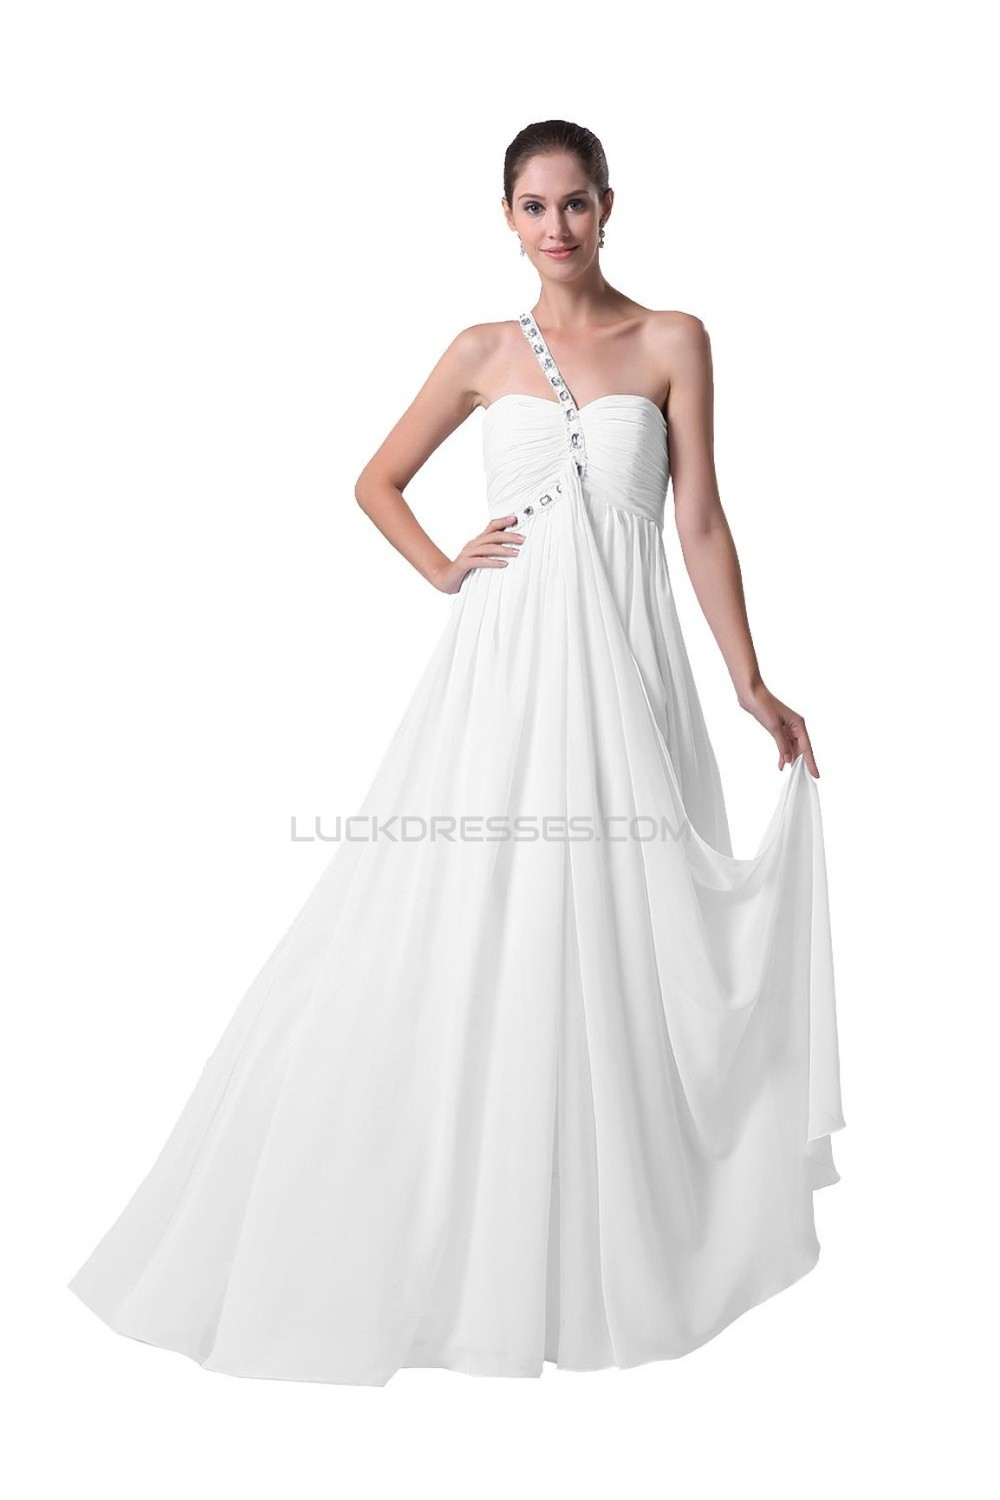 Sheath/Column One Shoulder Chiffon Wedding Dresses WD010025